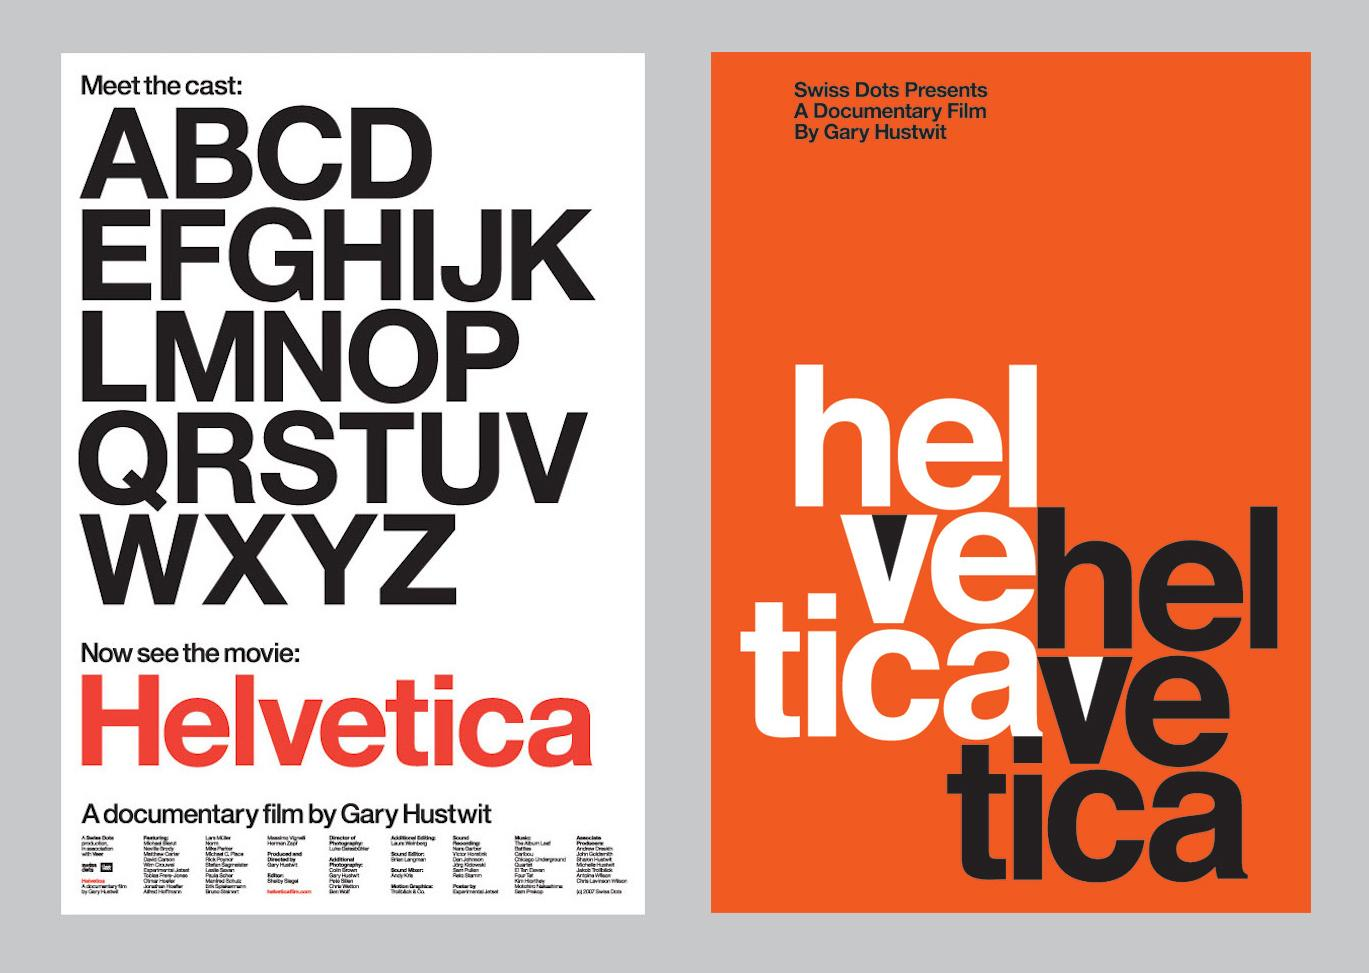 Helvetica movie posters by Experimental Jetset